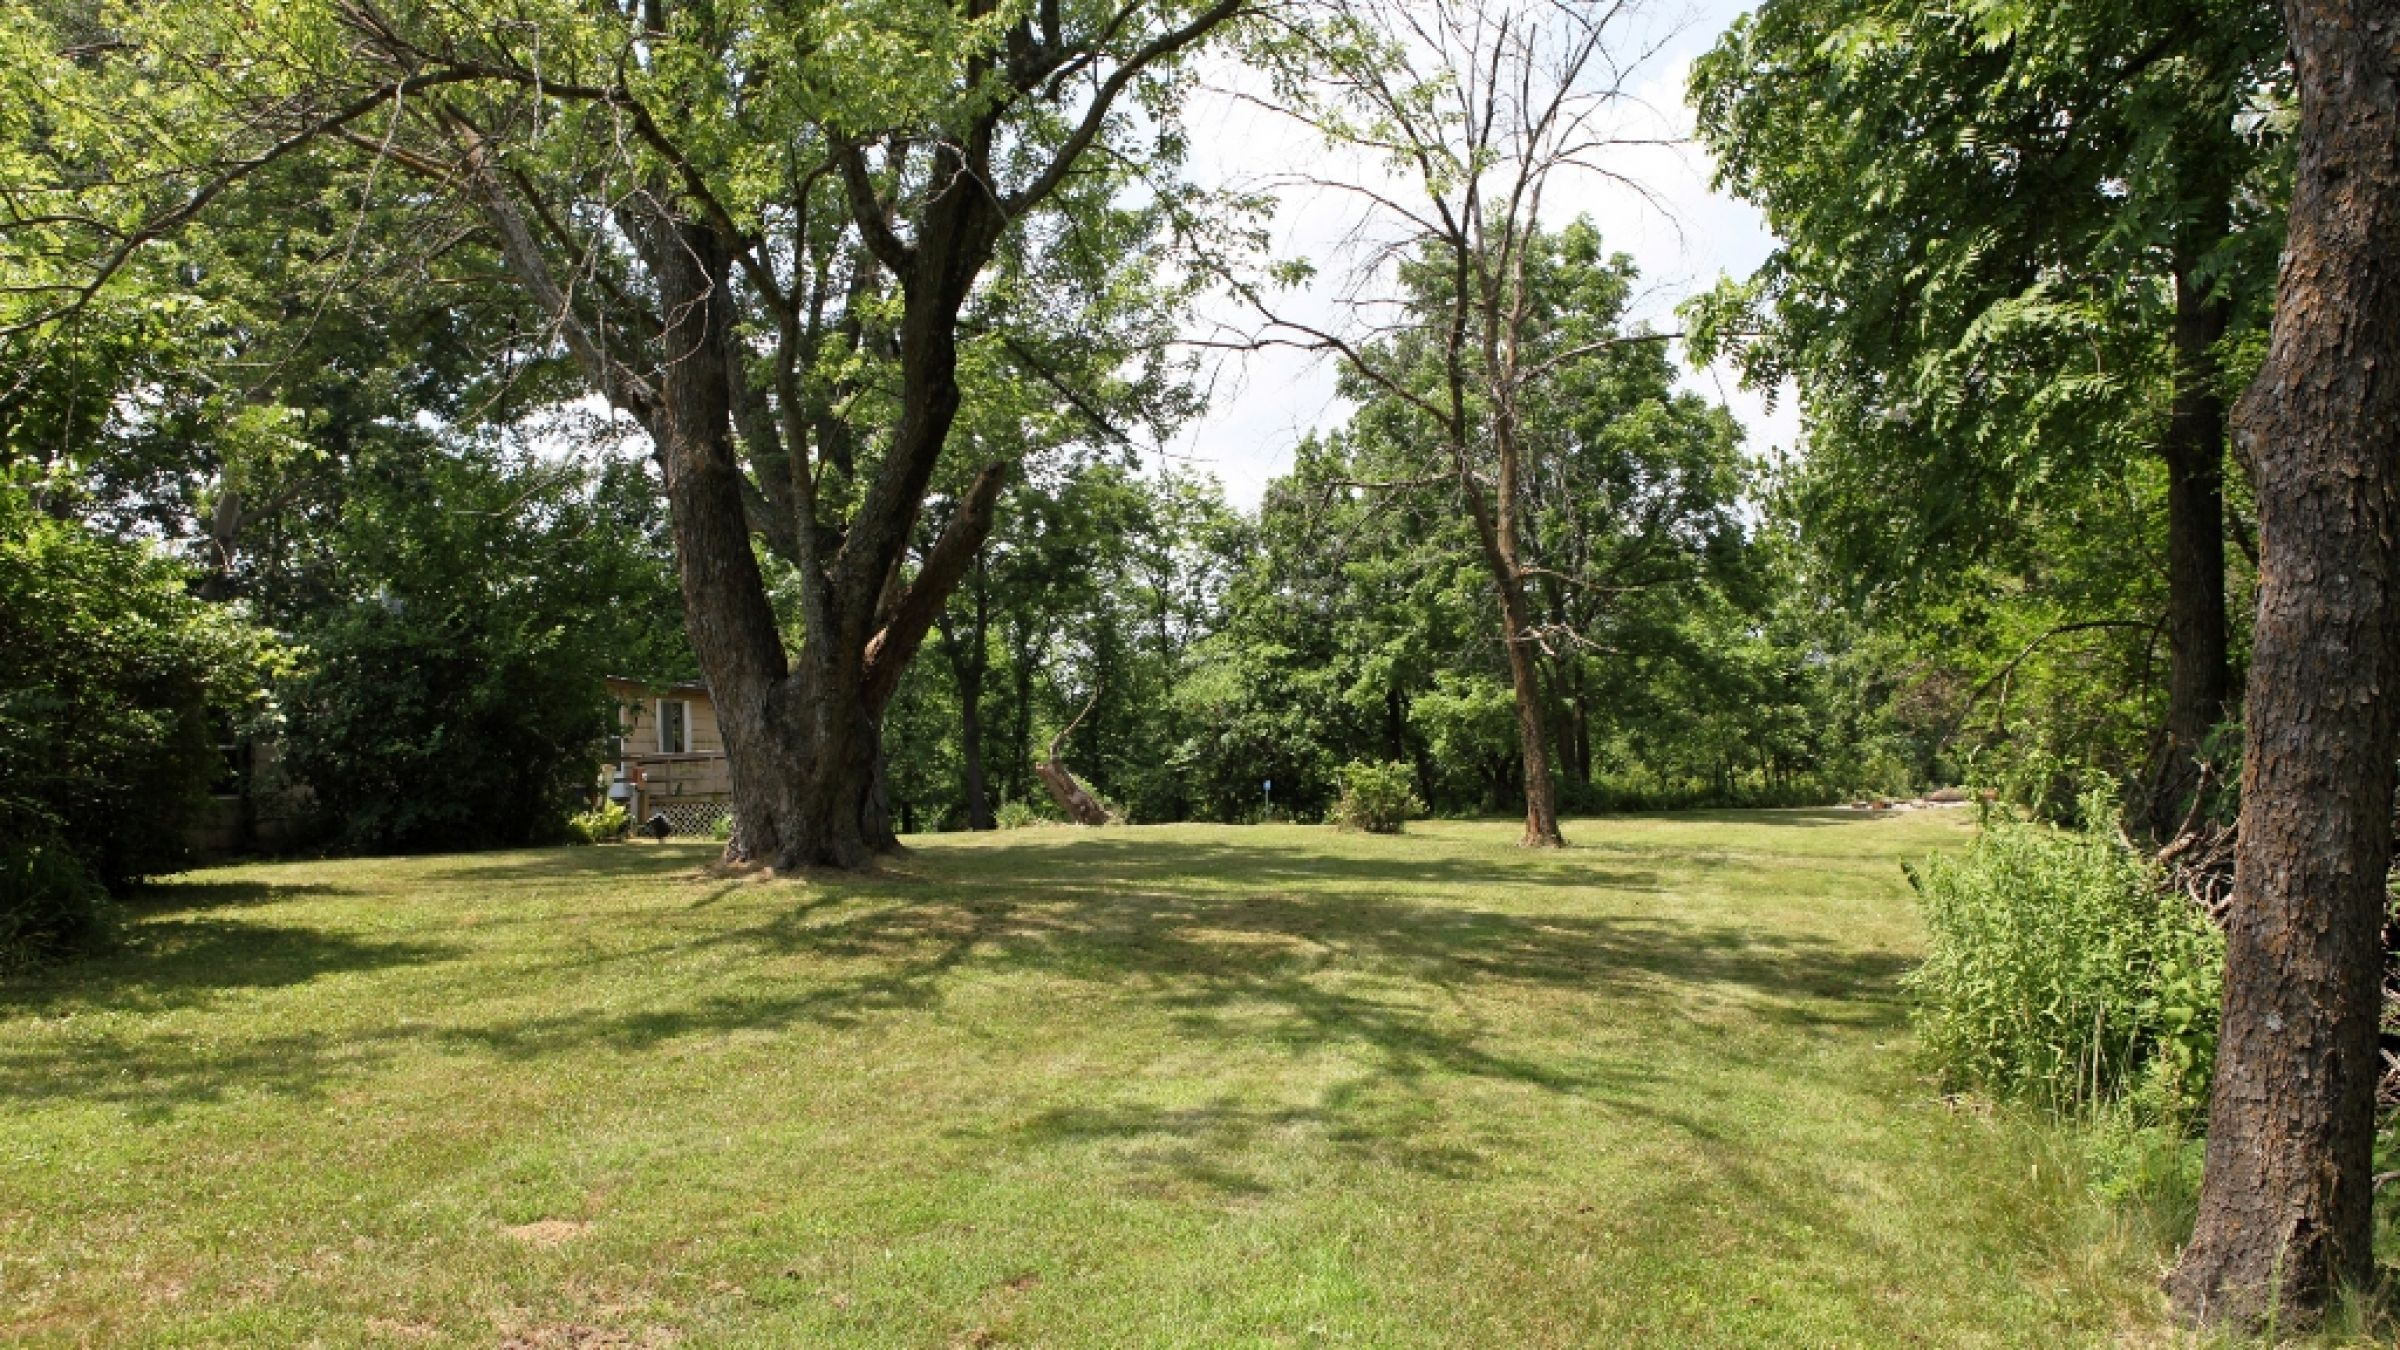 residential-lucas-county-iowa-2-acres-listing-number-15392-5-2021-03-03-215627.JPG